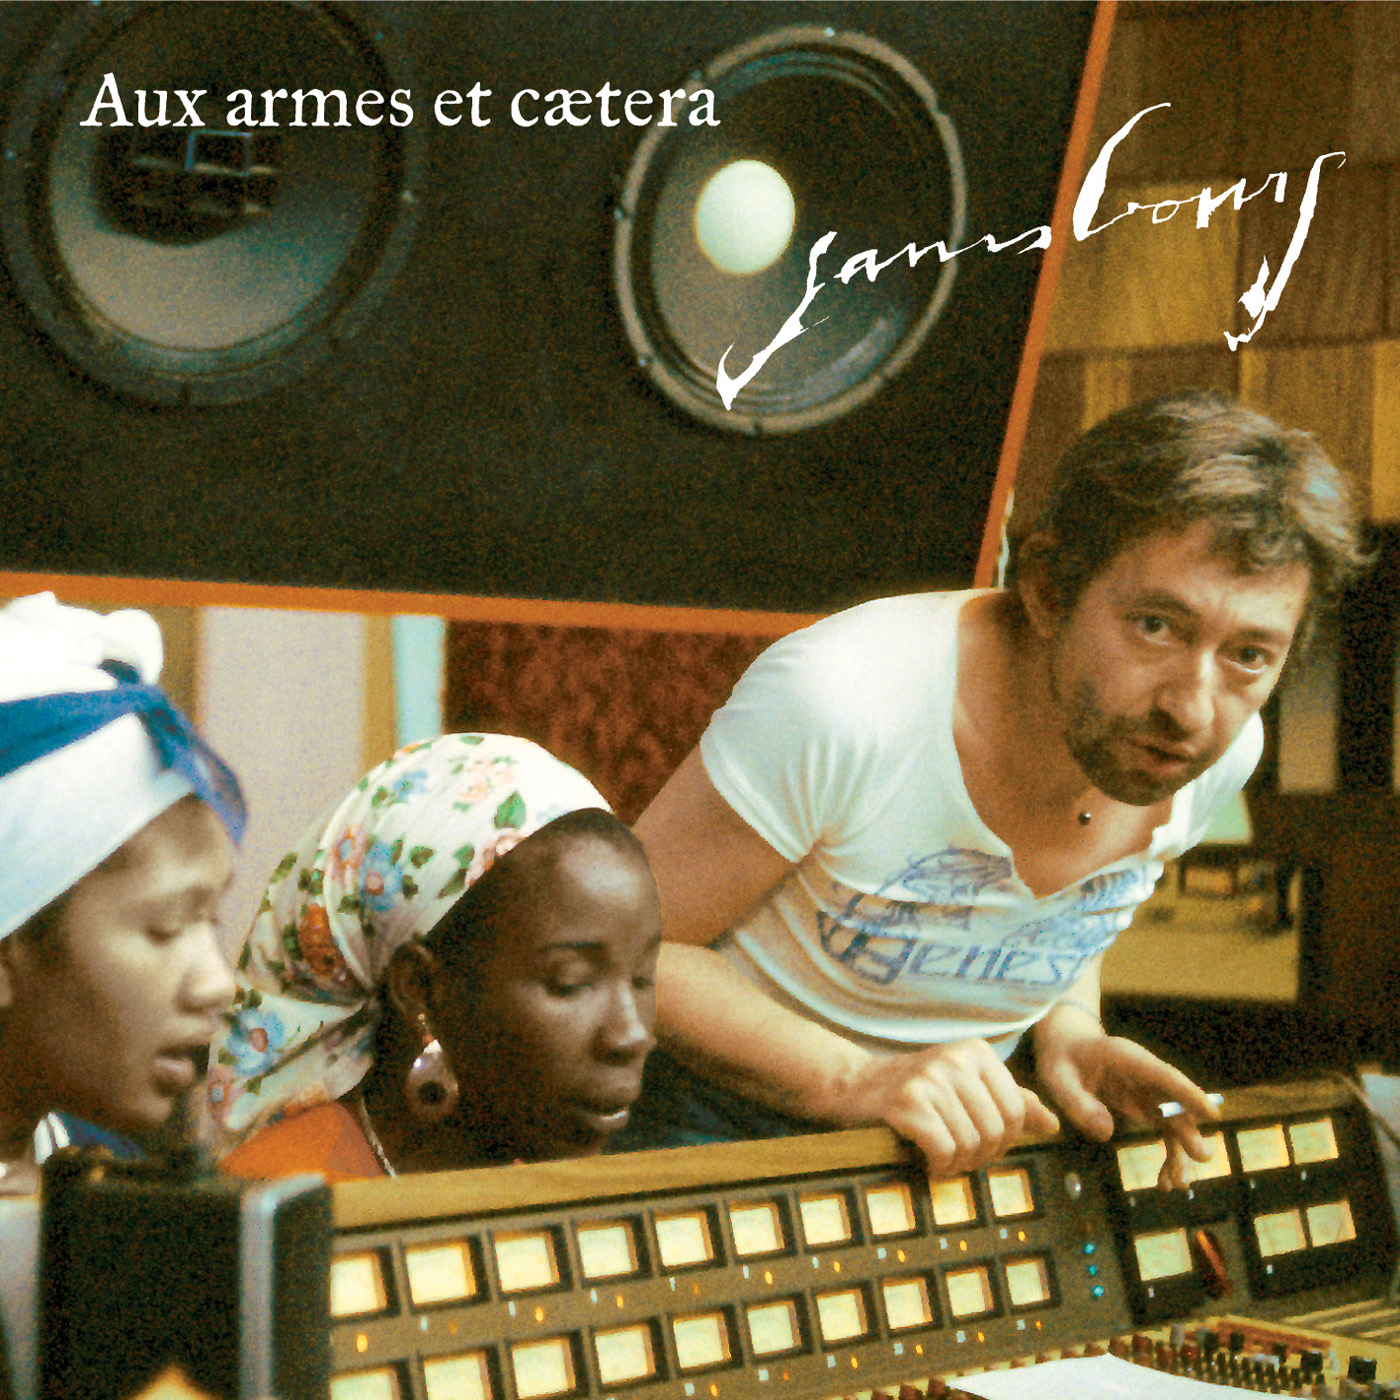 Aux Armes et caetera by Serge Gainsbourg cover